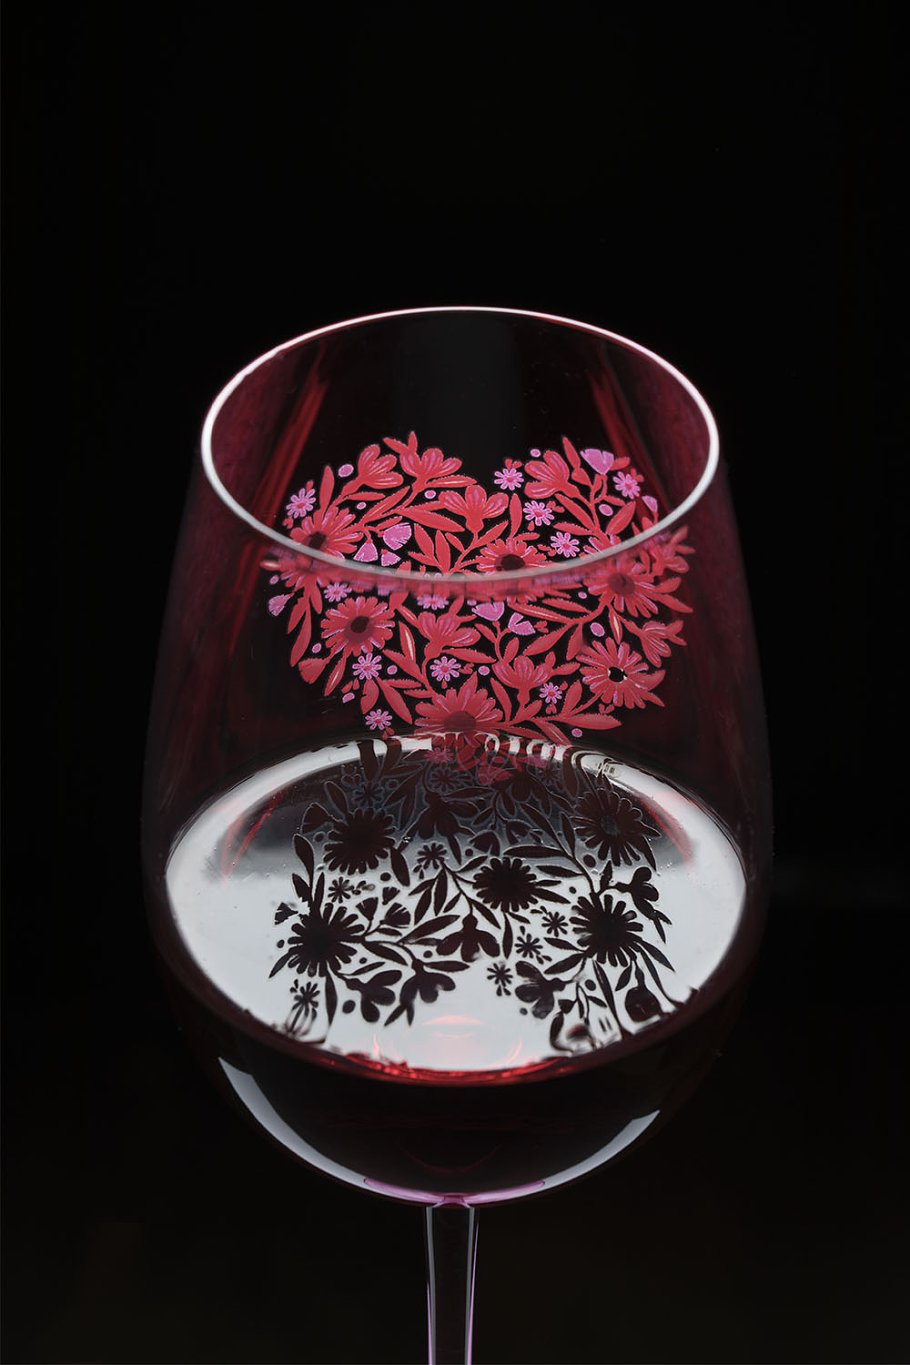 Hand Painted Wine Glass With Heart Food Images Creative Market